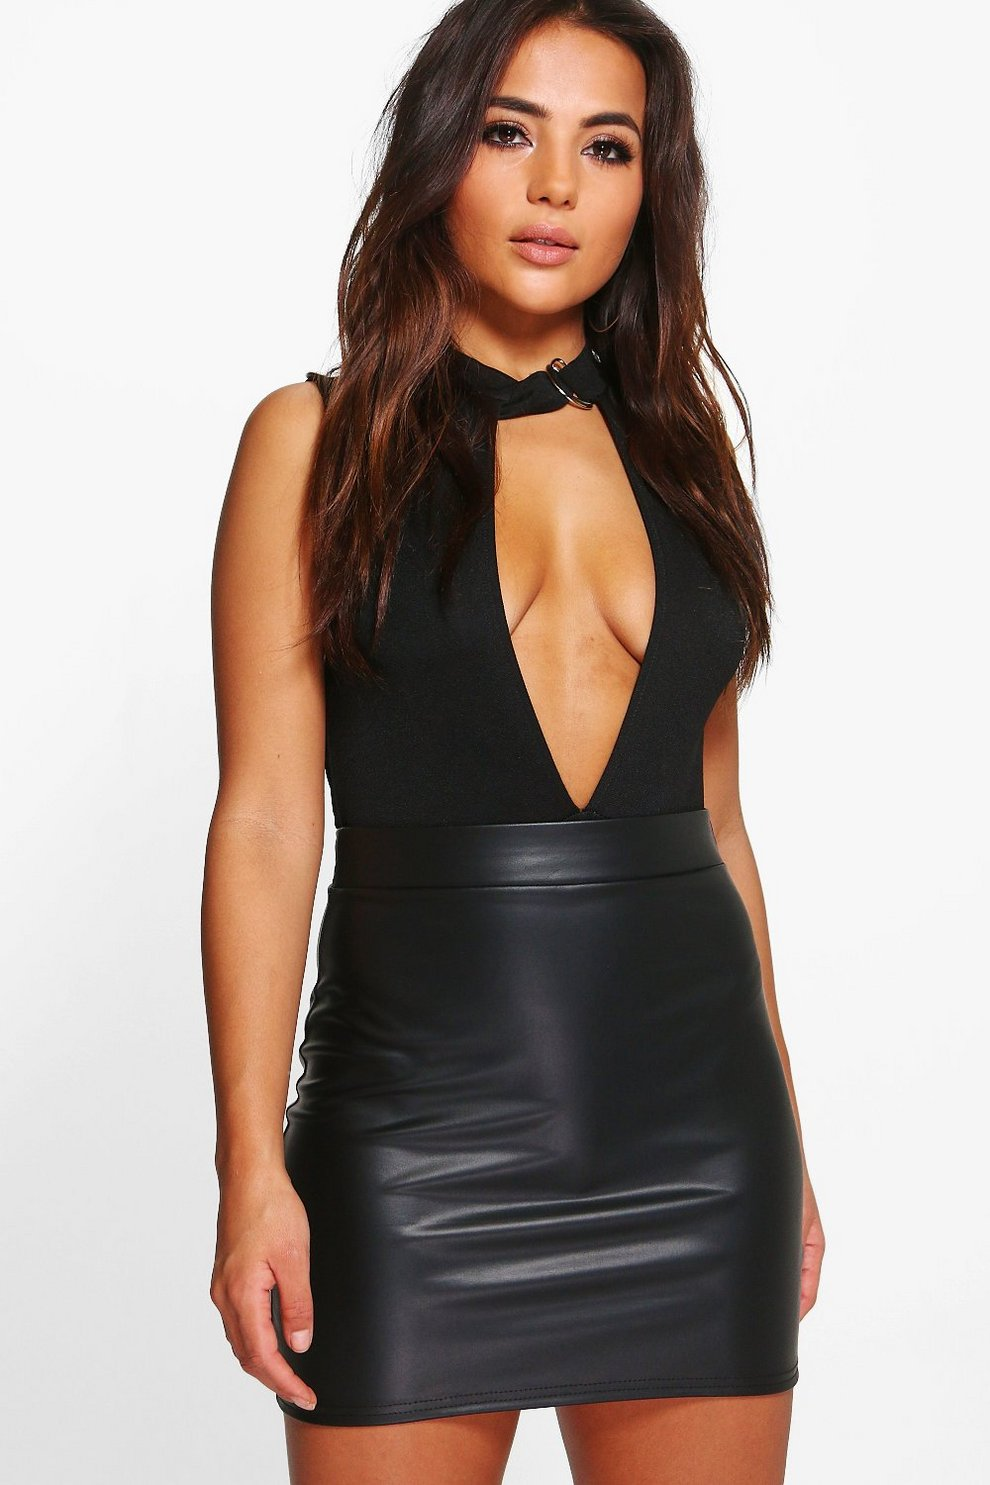 3a4bf0023f Petite Matte Leather Look Mini Skirt. Womens Black Petite Matte Leather  Look Mini Skirt. Hover to zoom